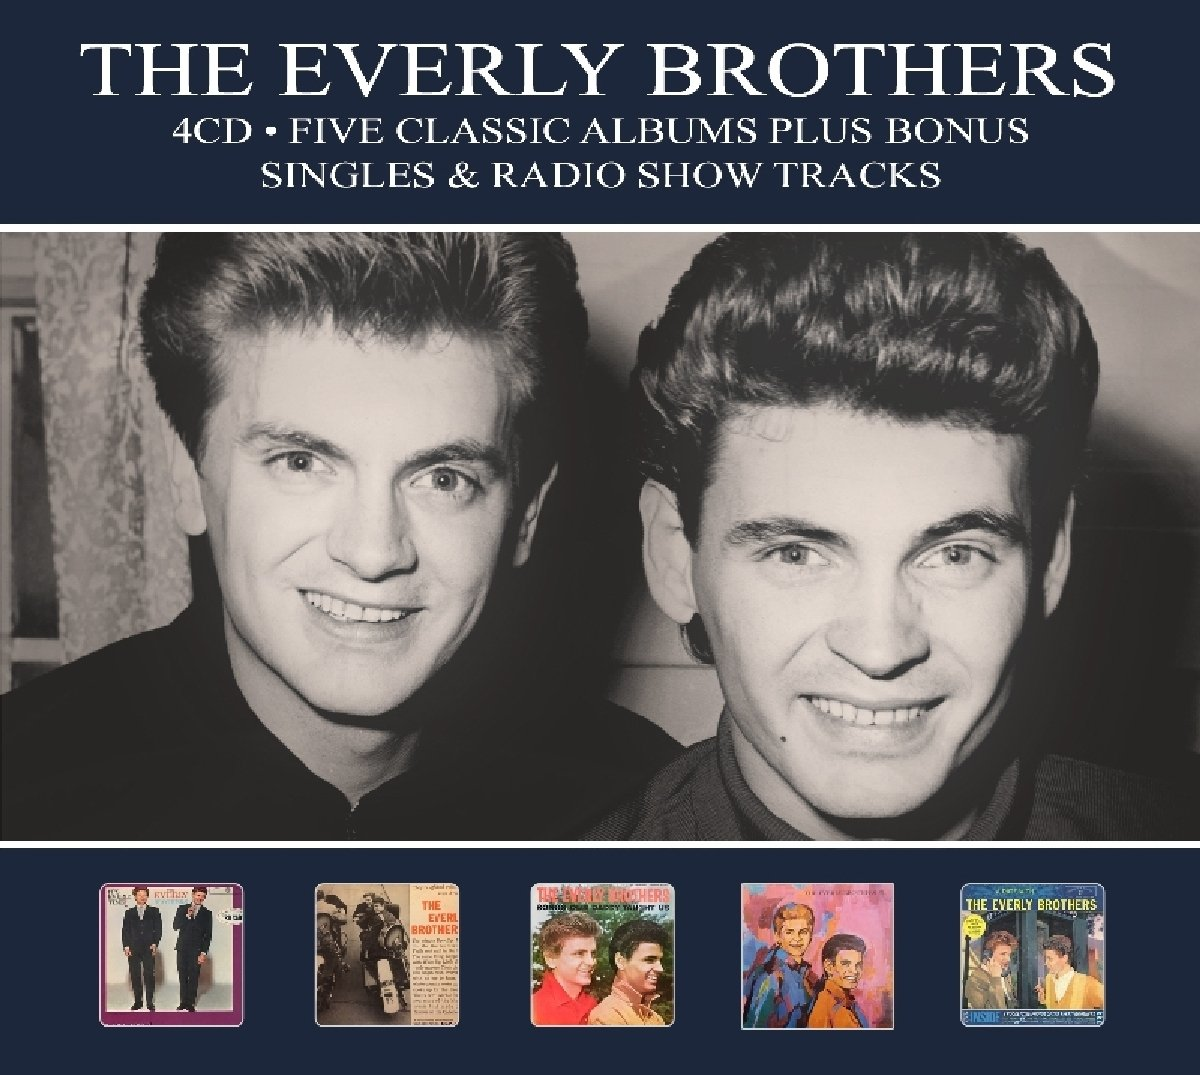 CD : The Everly Brothers - 5 Classic Albums Plus (Digipack Packaging, Germany - Import)